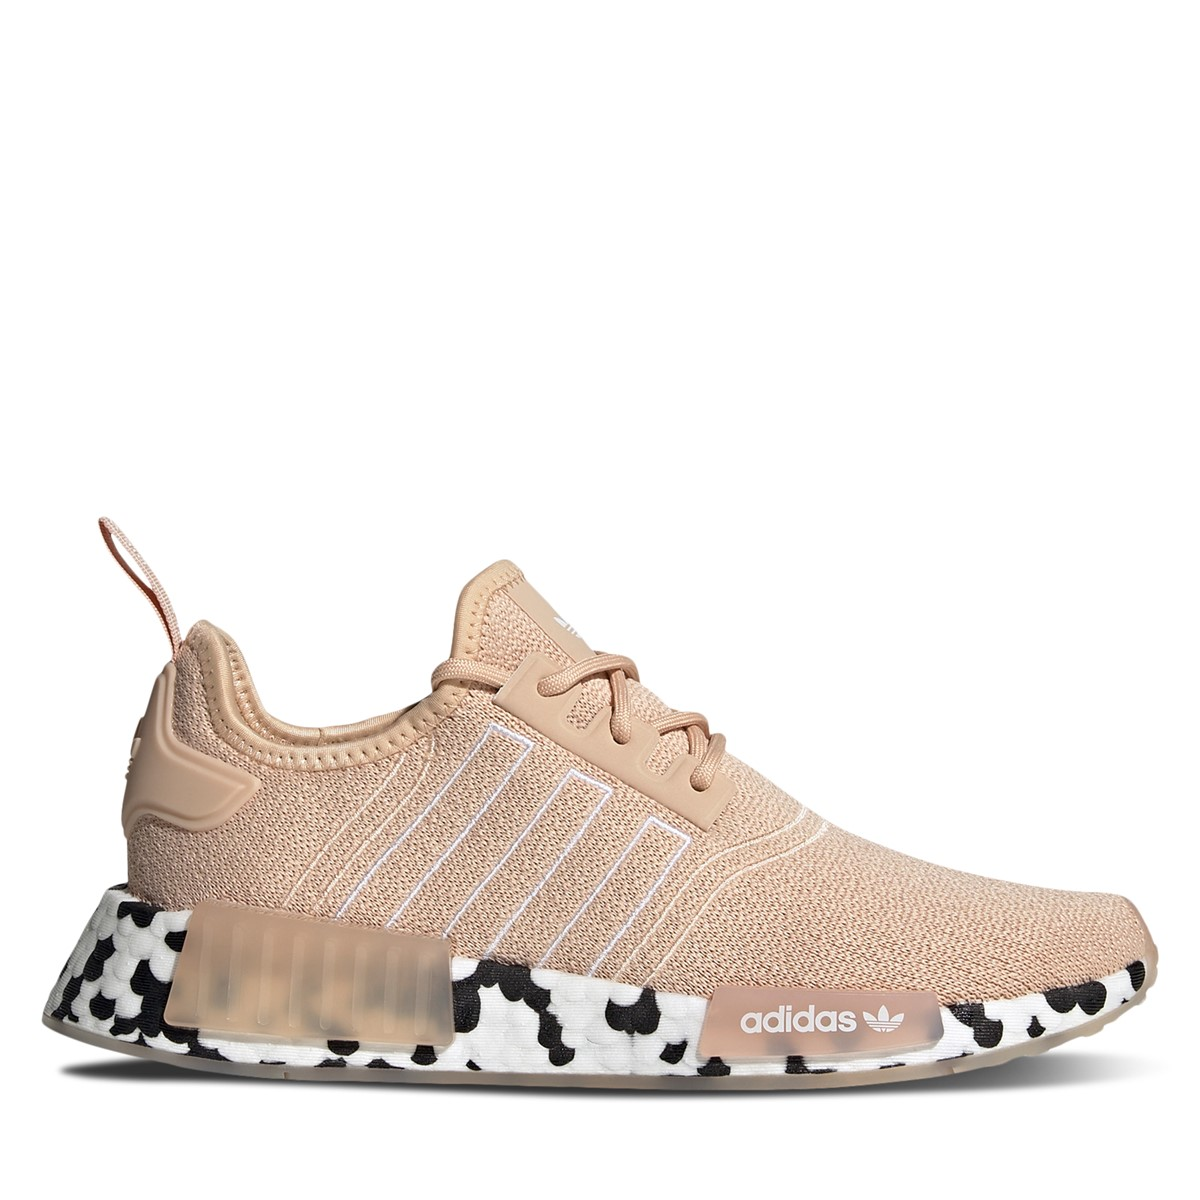 Women's NMD Sneakers in Light Pink/ White/ Black